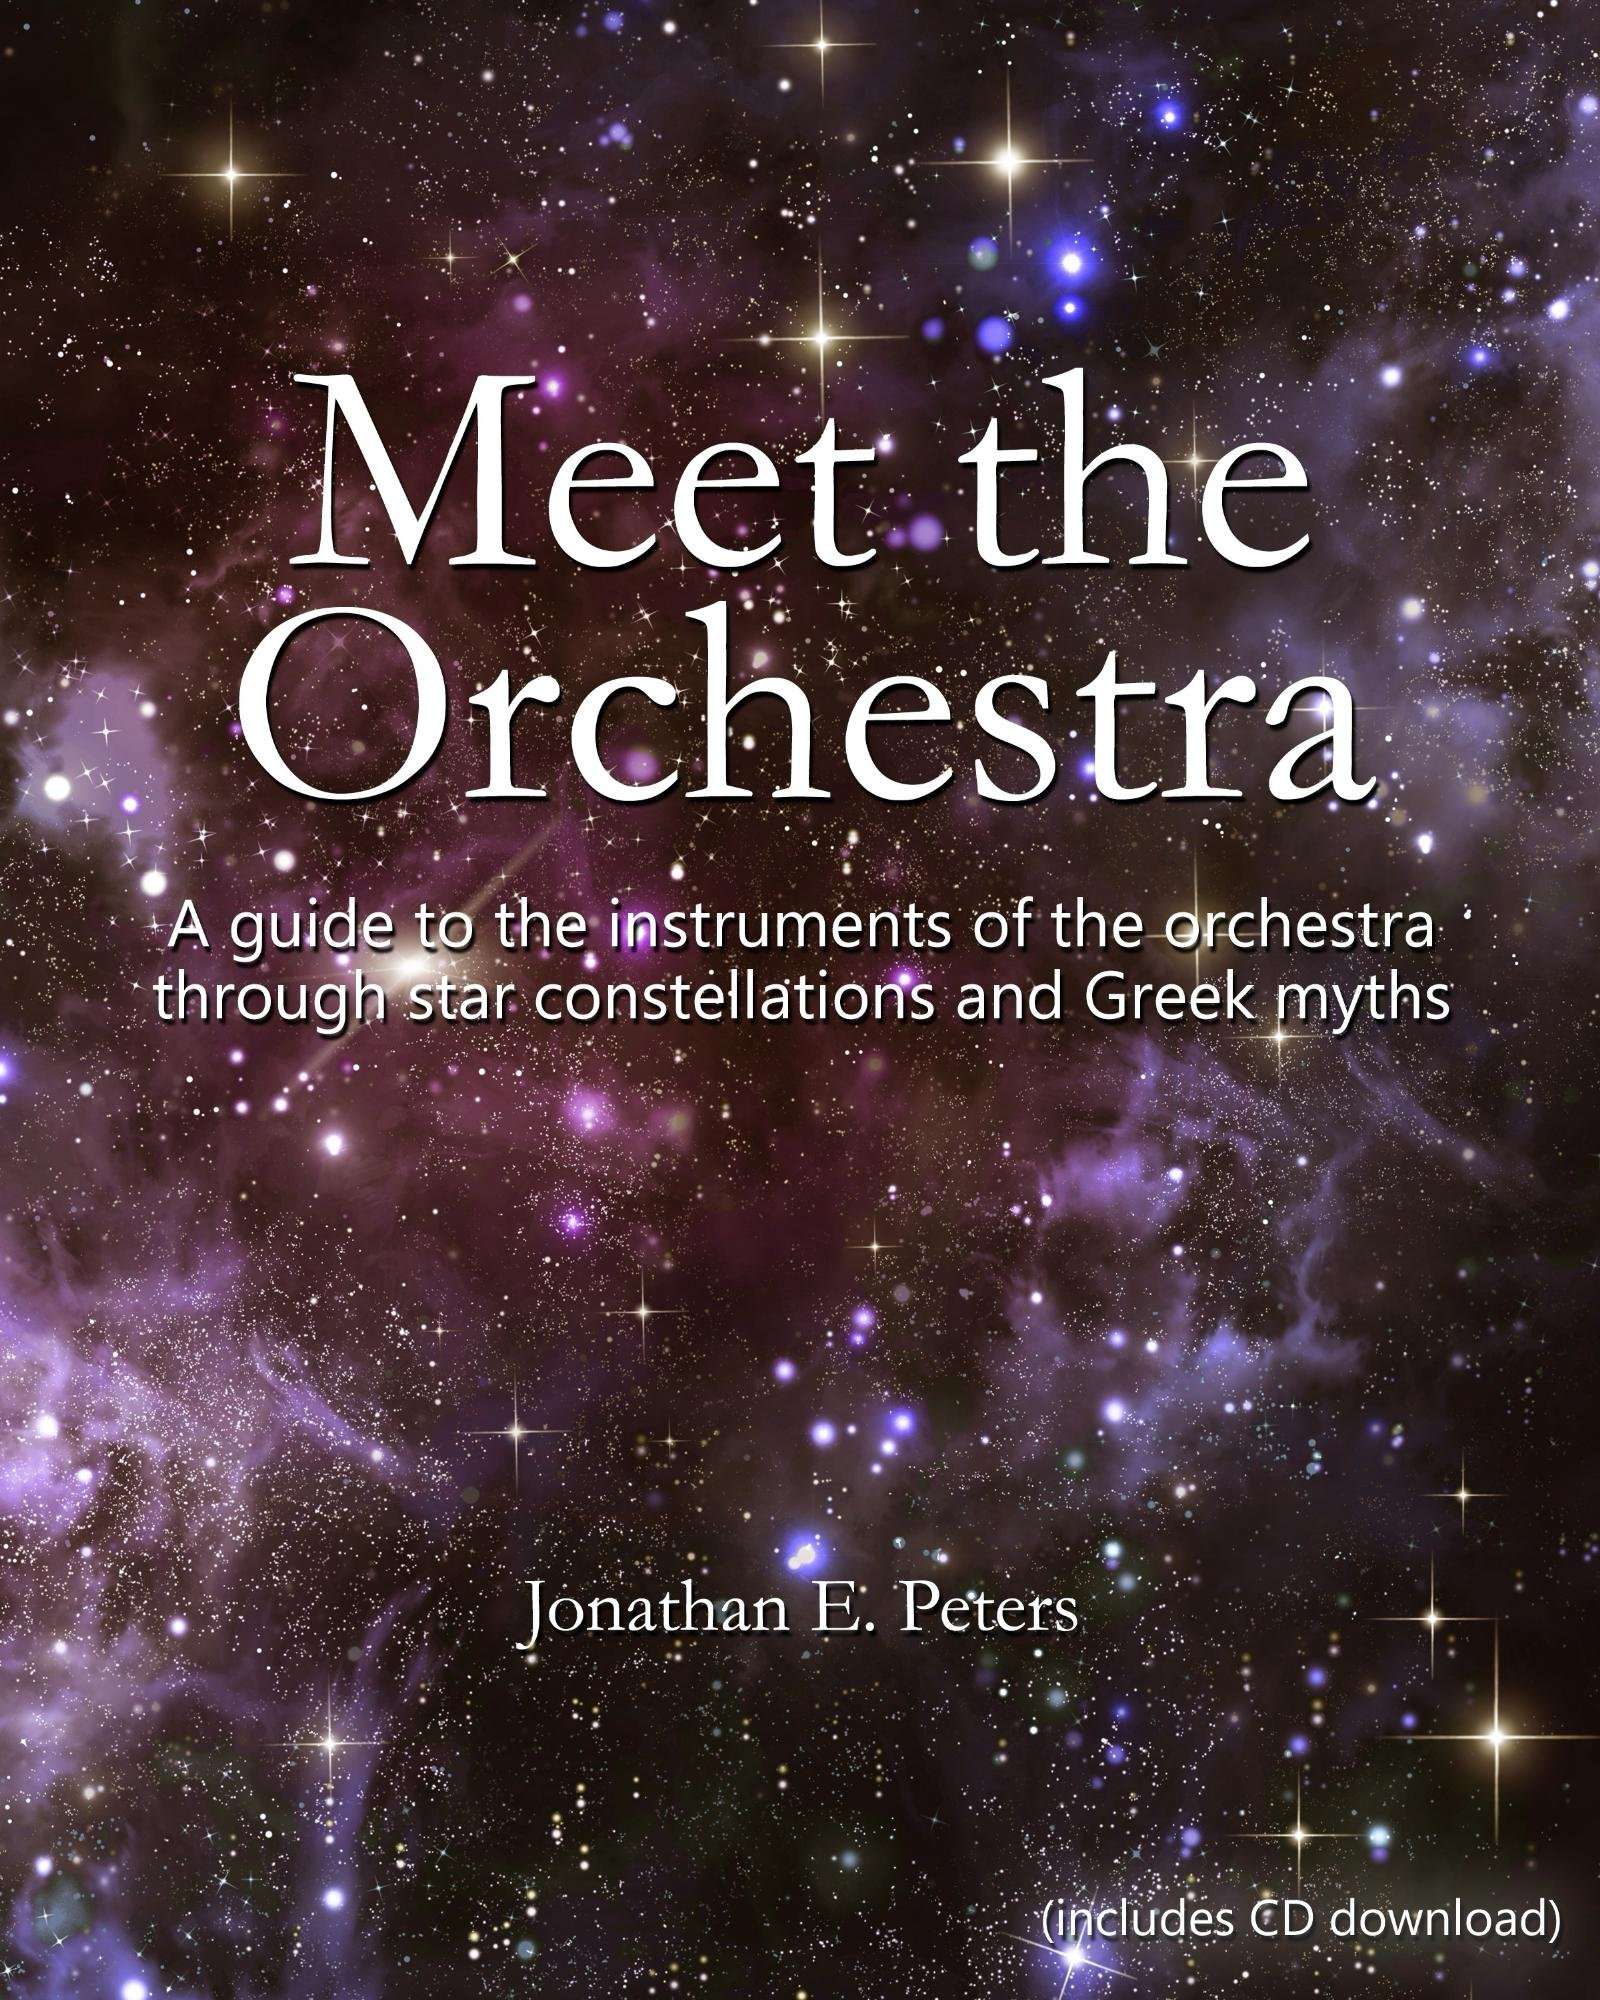 Meet the Orchestra: A guide to the instruments of the orchestra through star constellations and Greek myths (English Edition)